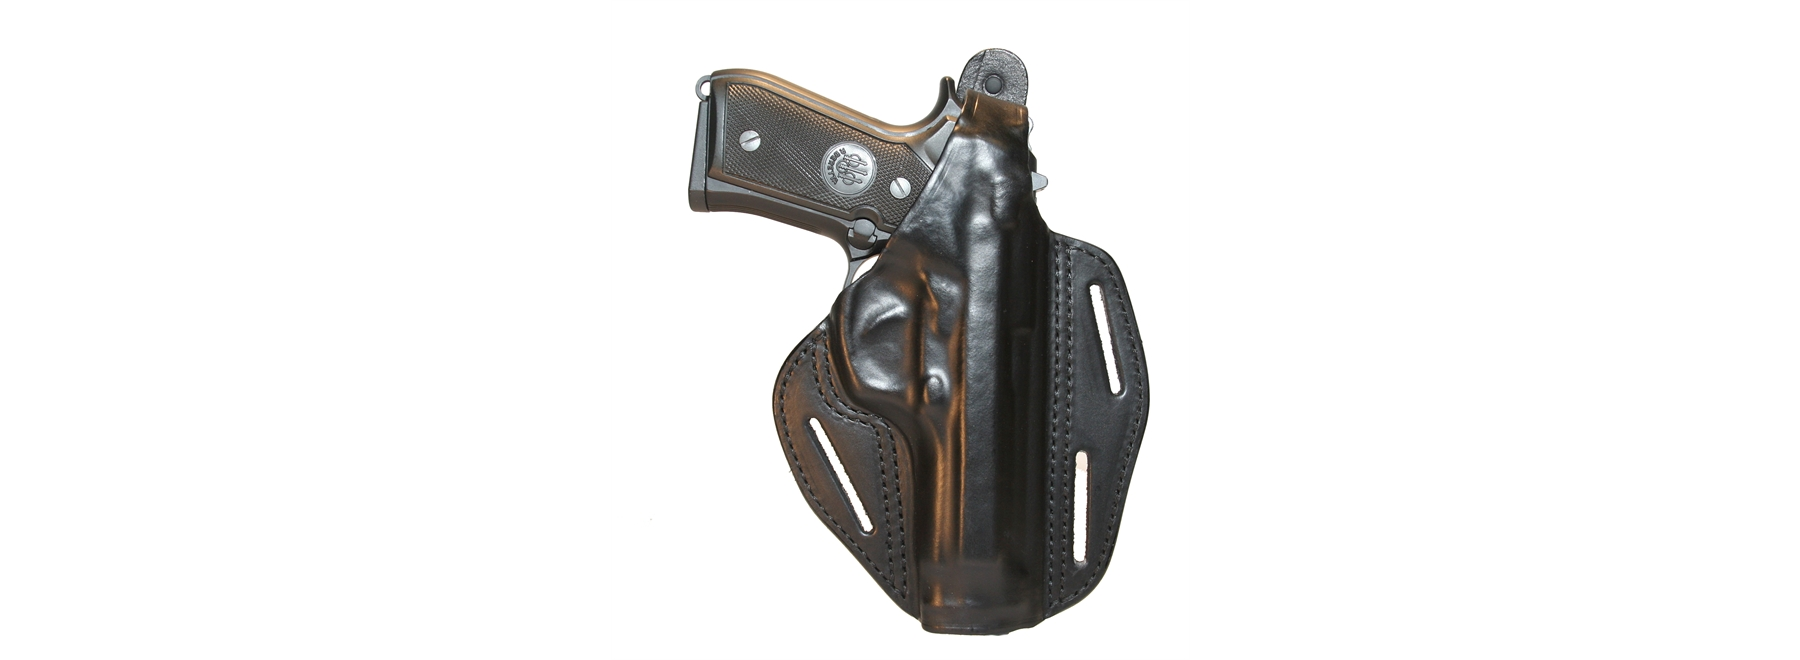 Leather Concealment Holsters